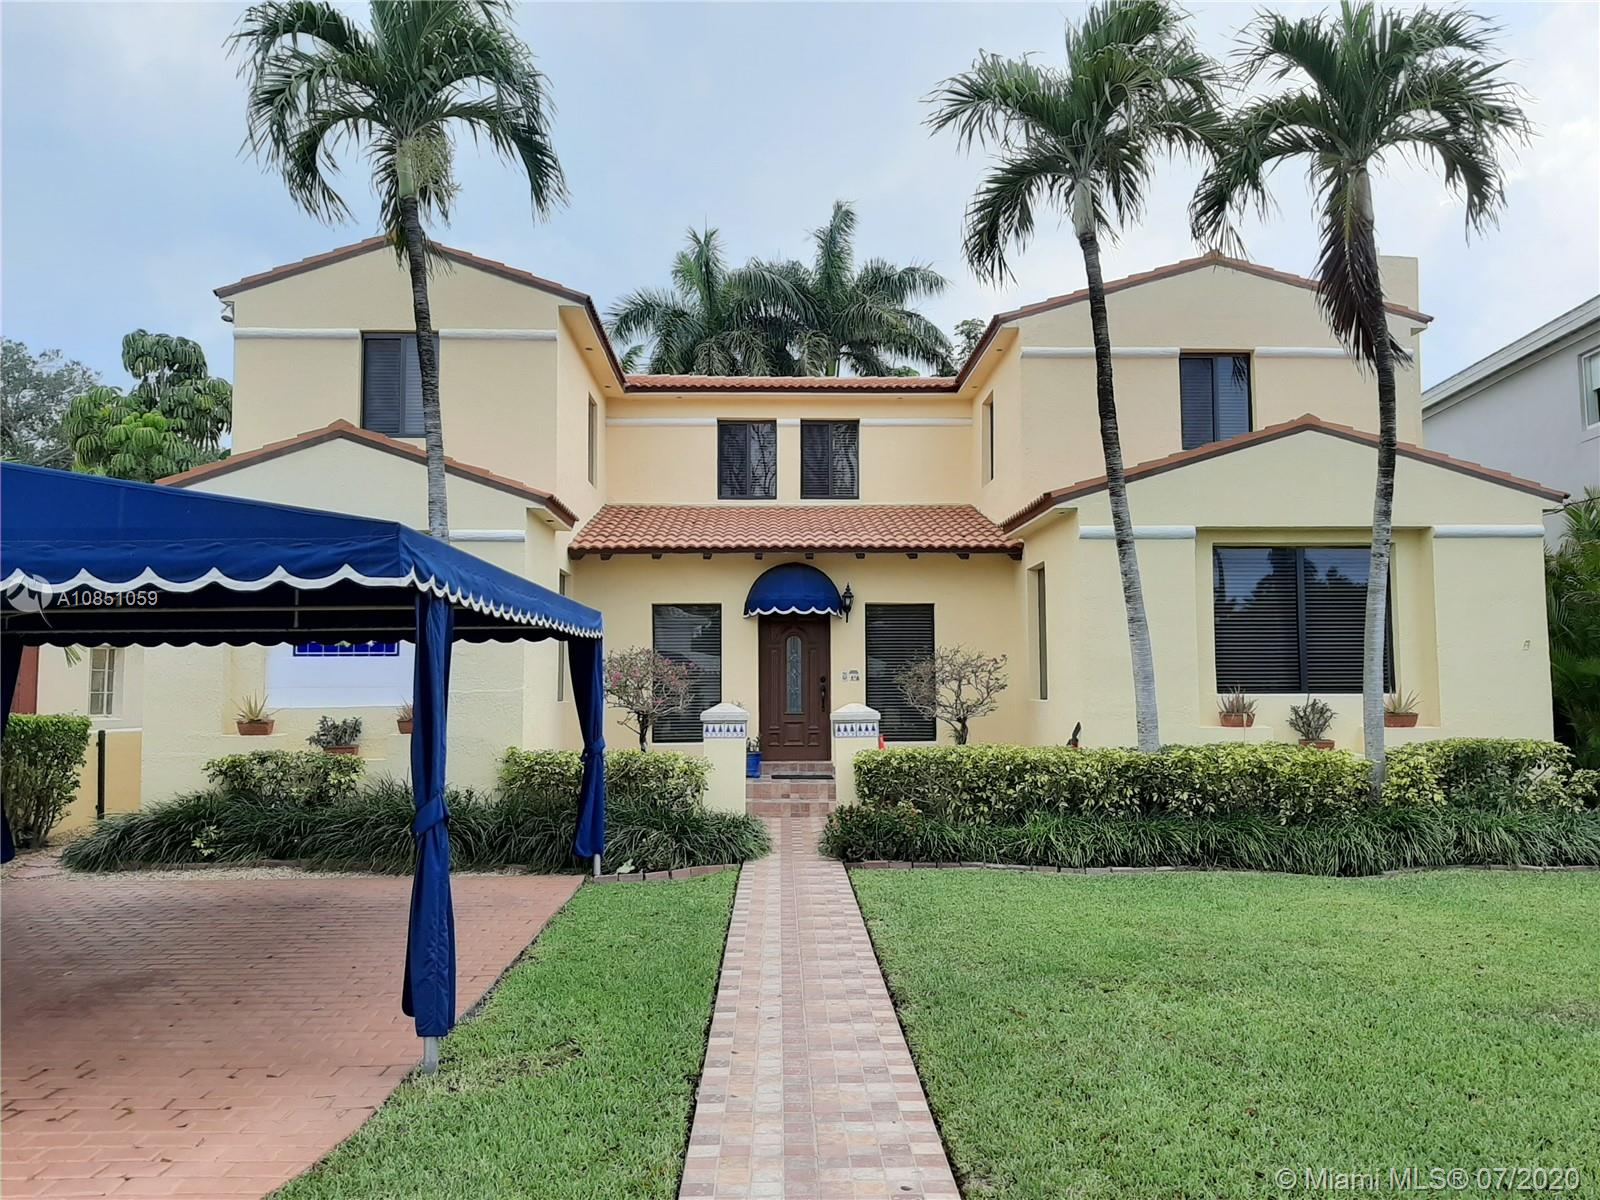 OWNER FINANCING AVAILABLE!!!!! LARGE 4/4 CLASSIC MIAMI BEACH HOME, WITH LOTS OF CHARACTER. THIS HOME IS LOCATED RIGHT ACROSS LAGORCE COUNTRY CLUB GOLF COURSE, AND A BLOCK AWAY FROM THE BAY. BEAUTIFUL SPANISH FLOORING ALL THROUGH OUT, AND WOOD FLOORS UPSTAIRS. ENJOY THE CONVENIENCE OF 2 MASTER SUITES, ONE ON EACH FLOOR. THIS HOMEIS EXTREMELY WELL TAKEN CARE, AND FULL OF UPGRADES. IMPACT WINDOWS, BOSCH STAINLESS STEEL APPLIANCES, AUTOMATIC GATES, AND MUCH MORE. CLOSE TO BEACHES, RESTAURANTS, PARKS, SCHOOLS AND EASY ACCESS TO THE FREEWAY. ENJOY ALL THE FUN OF LIVING AT THE BEACH.